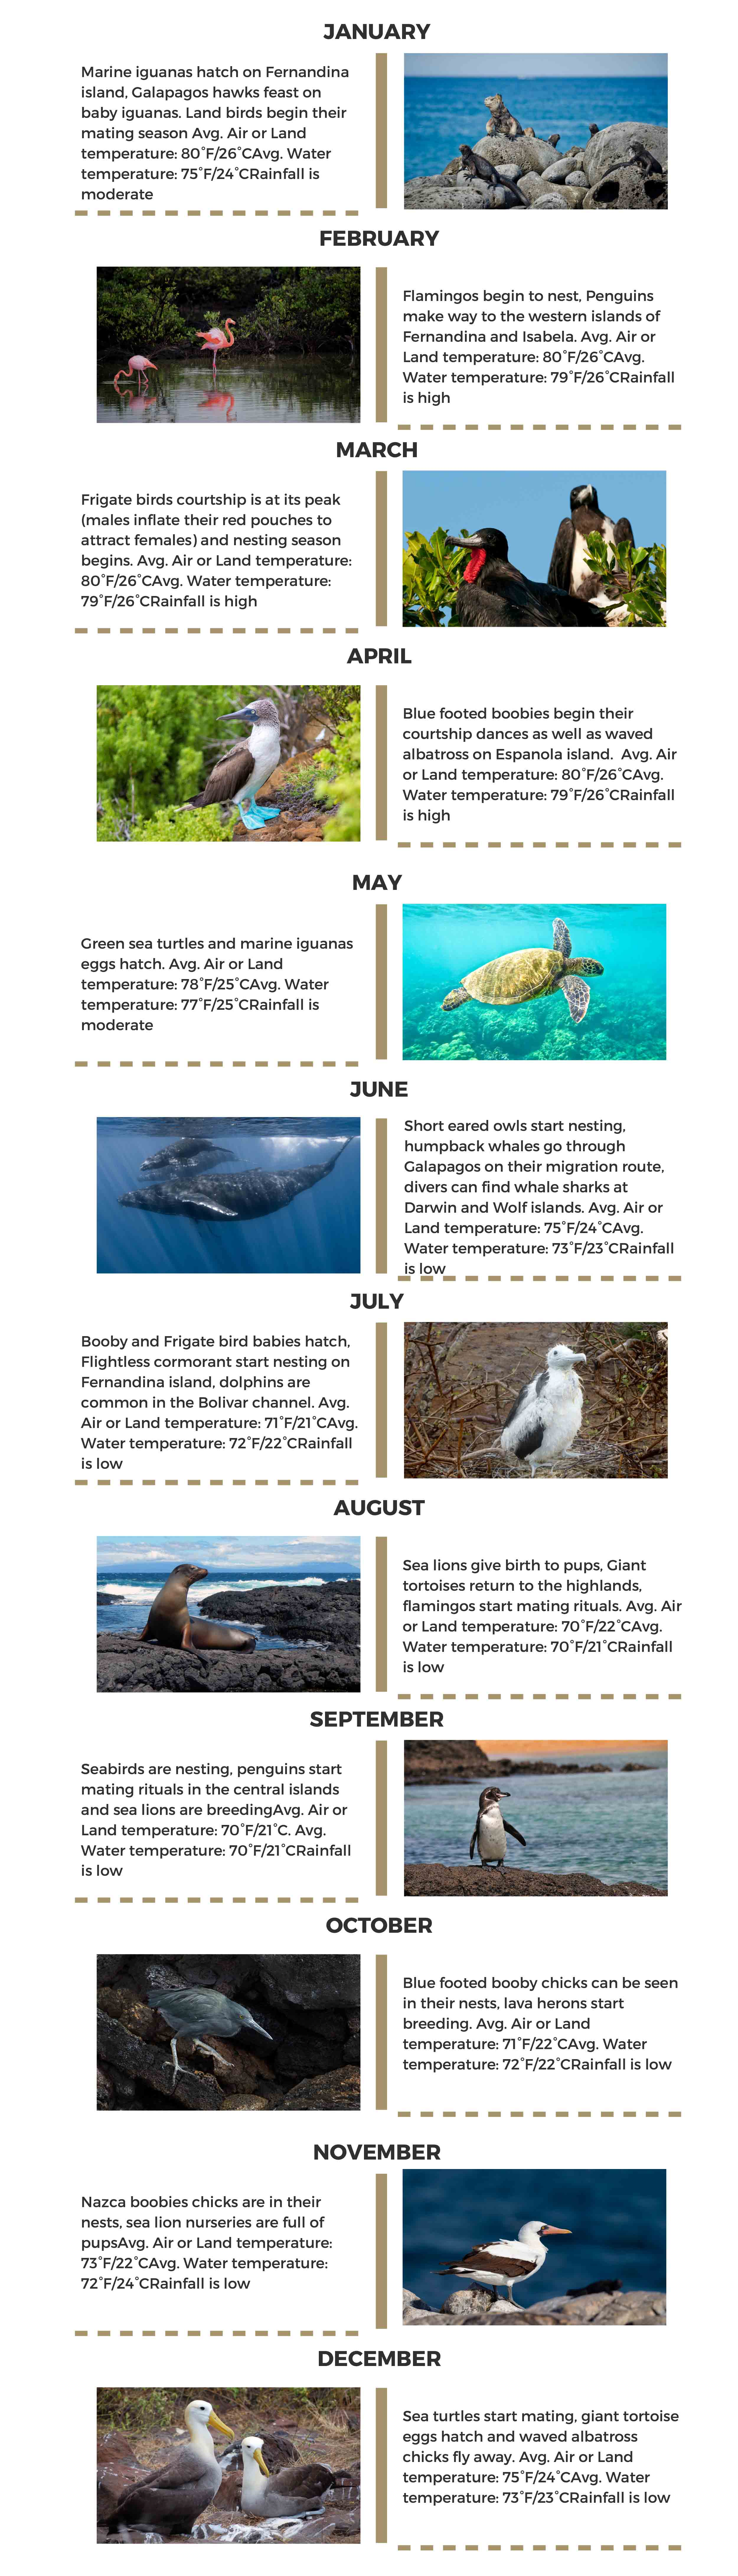 Galapagos islands Infographic